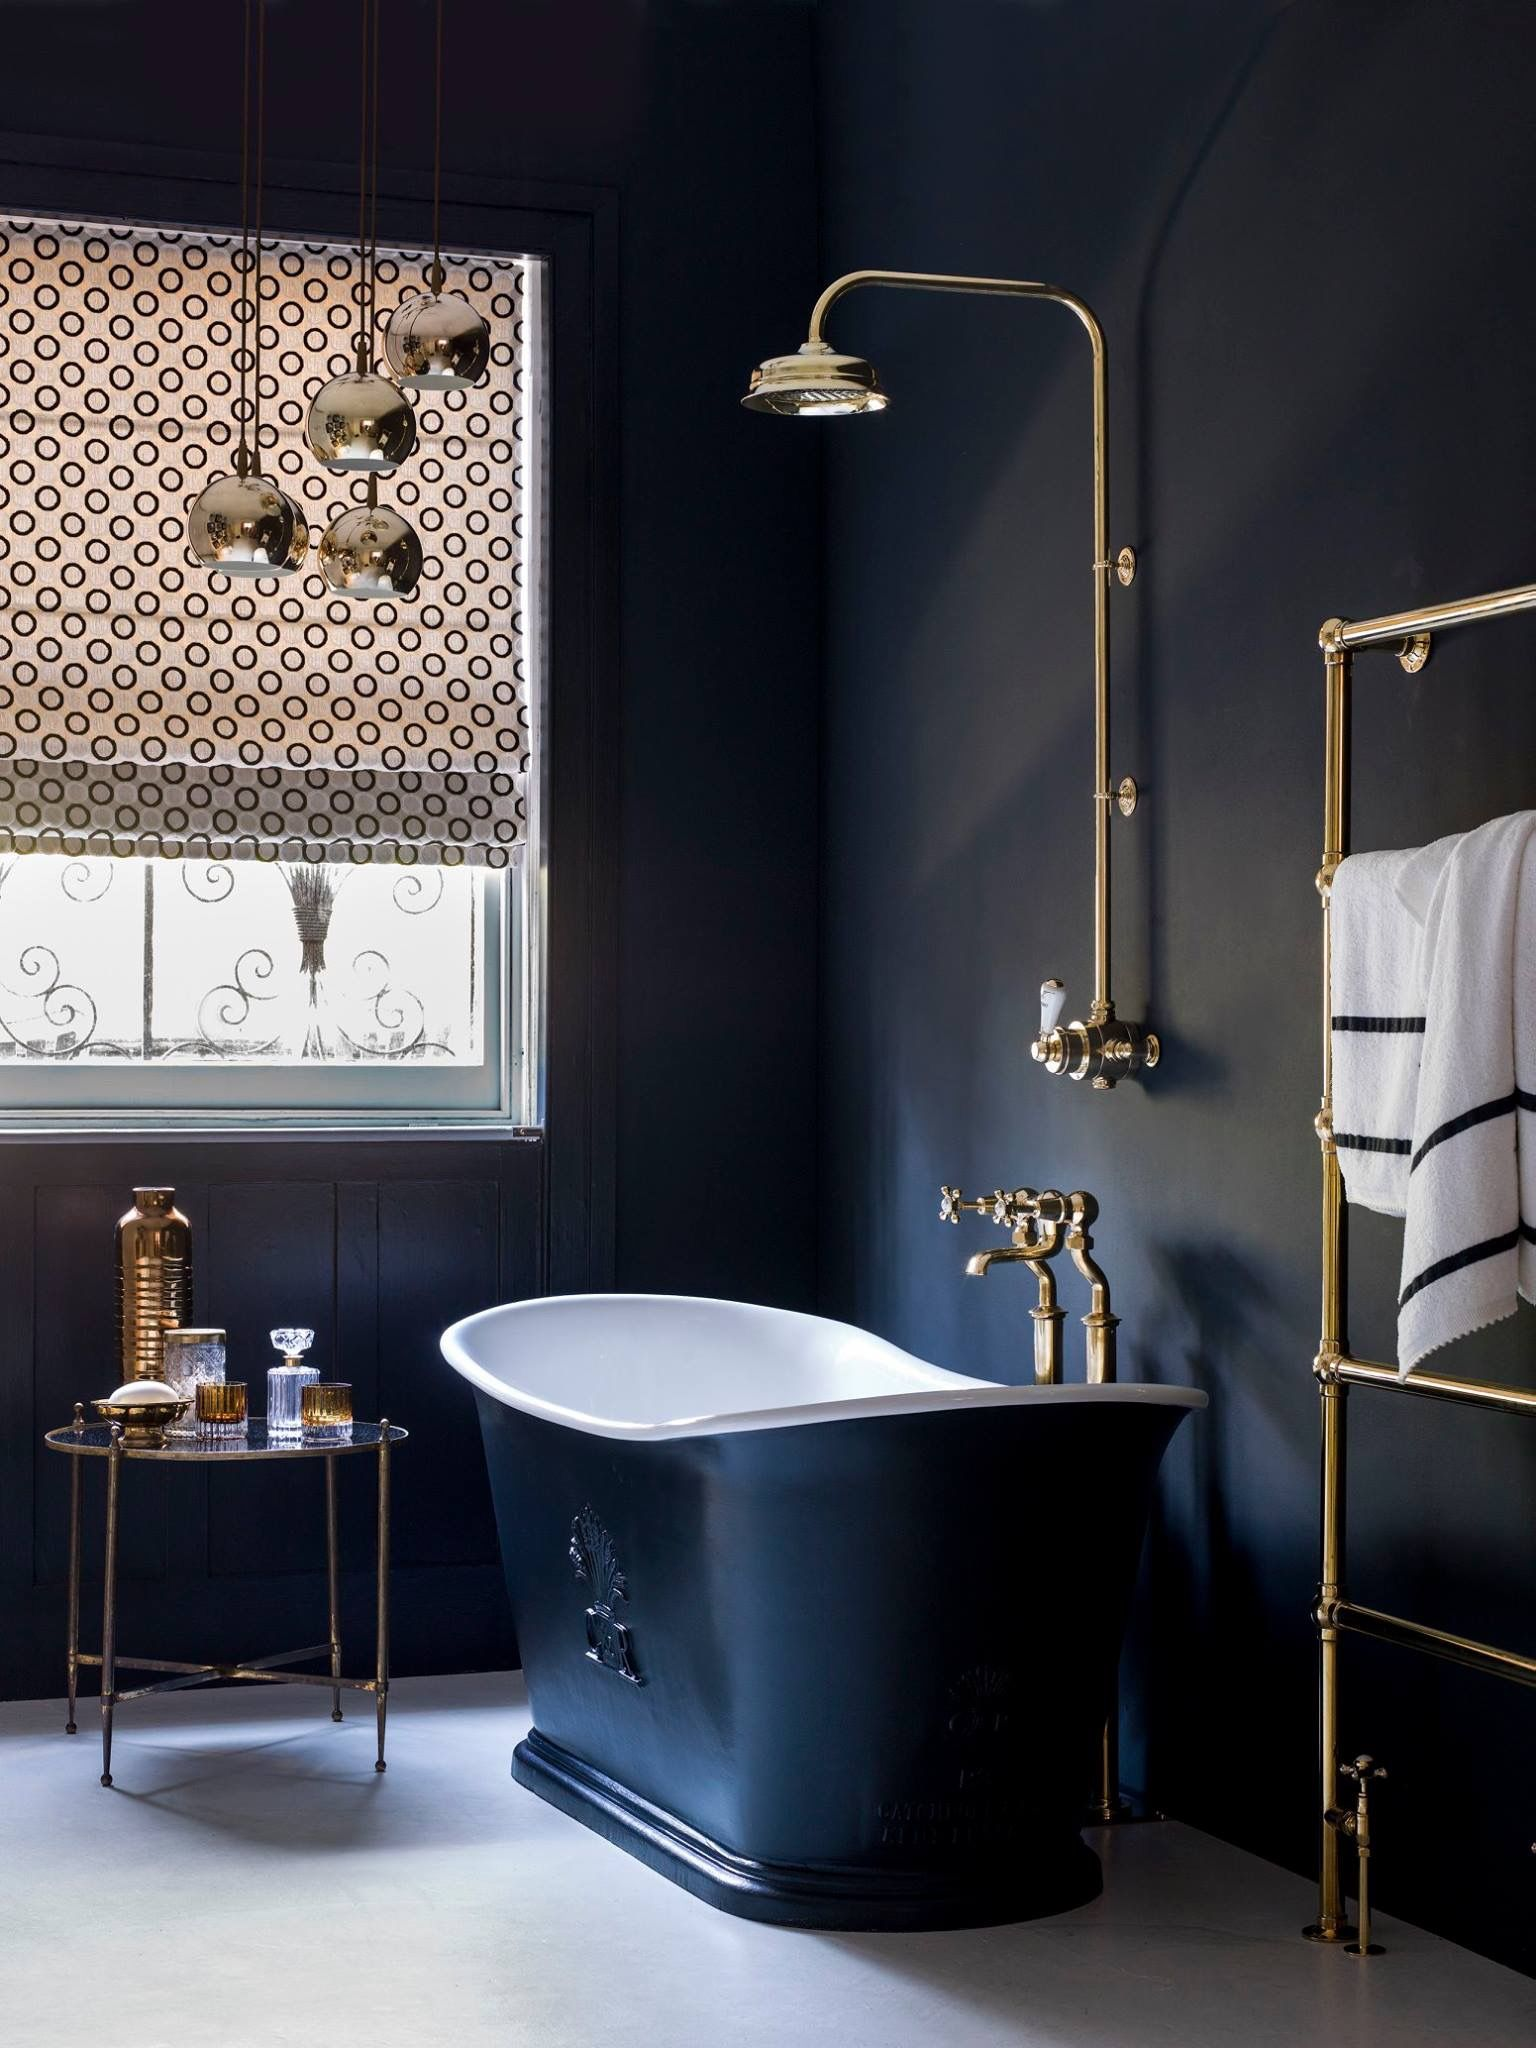 A Dark Bathroom Decor With Shower Over A Free Standing